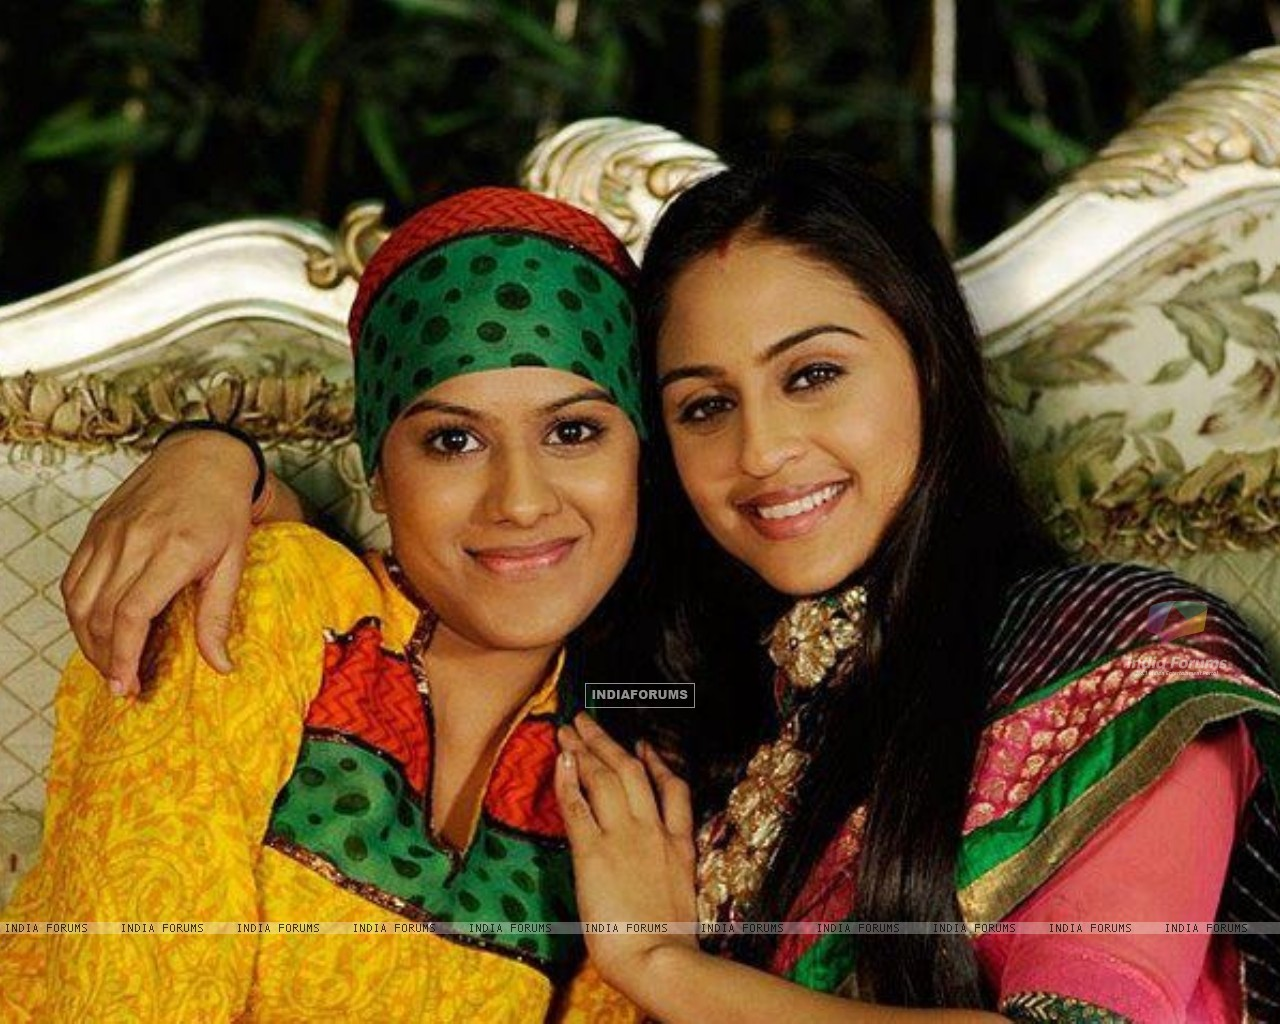 Nia Sharma as Manvi and Krystle as jeevika celebrates raksha bandhan day on sets (217157) size:1280x1024